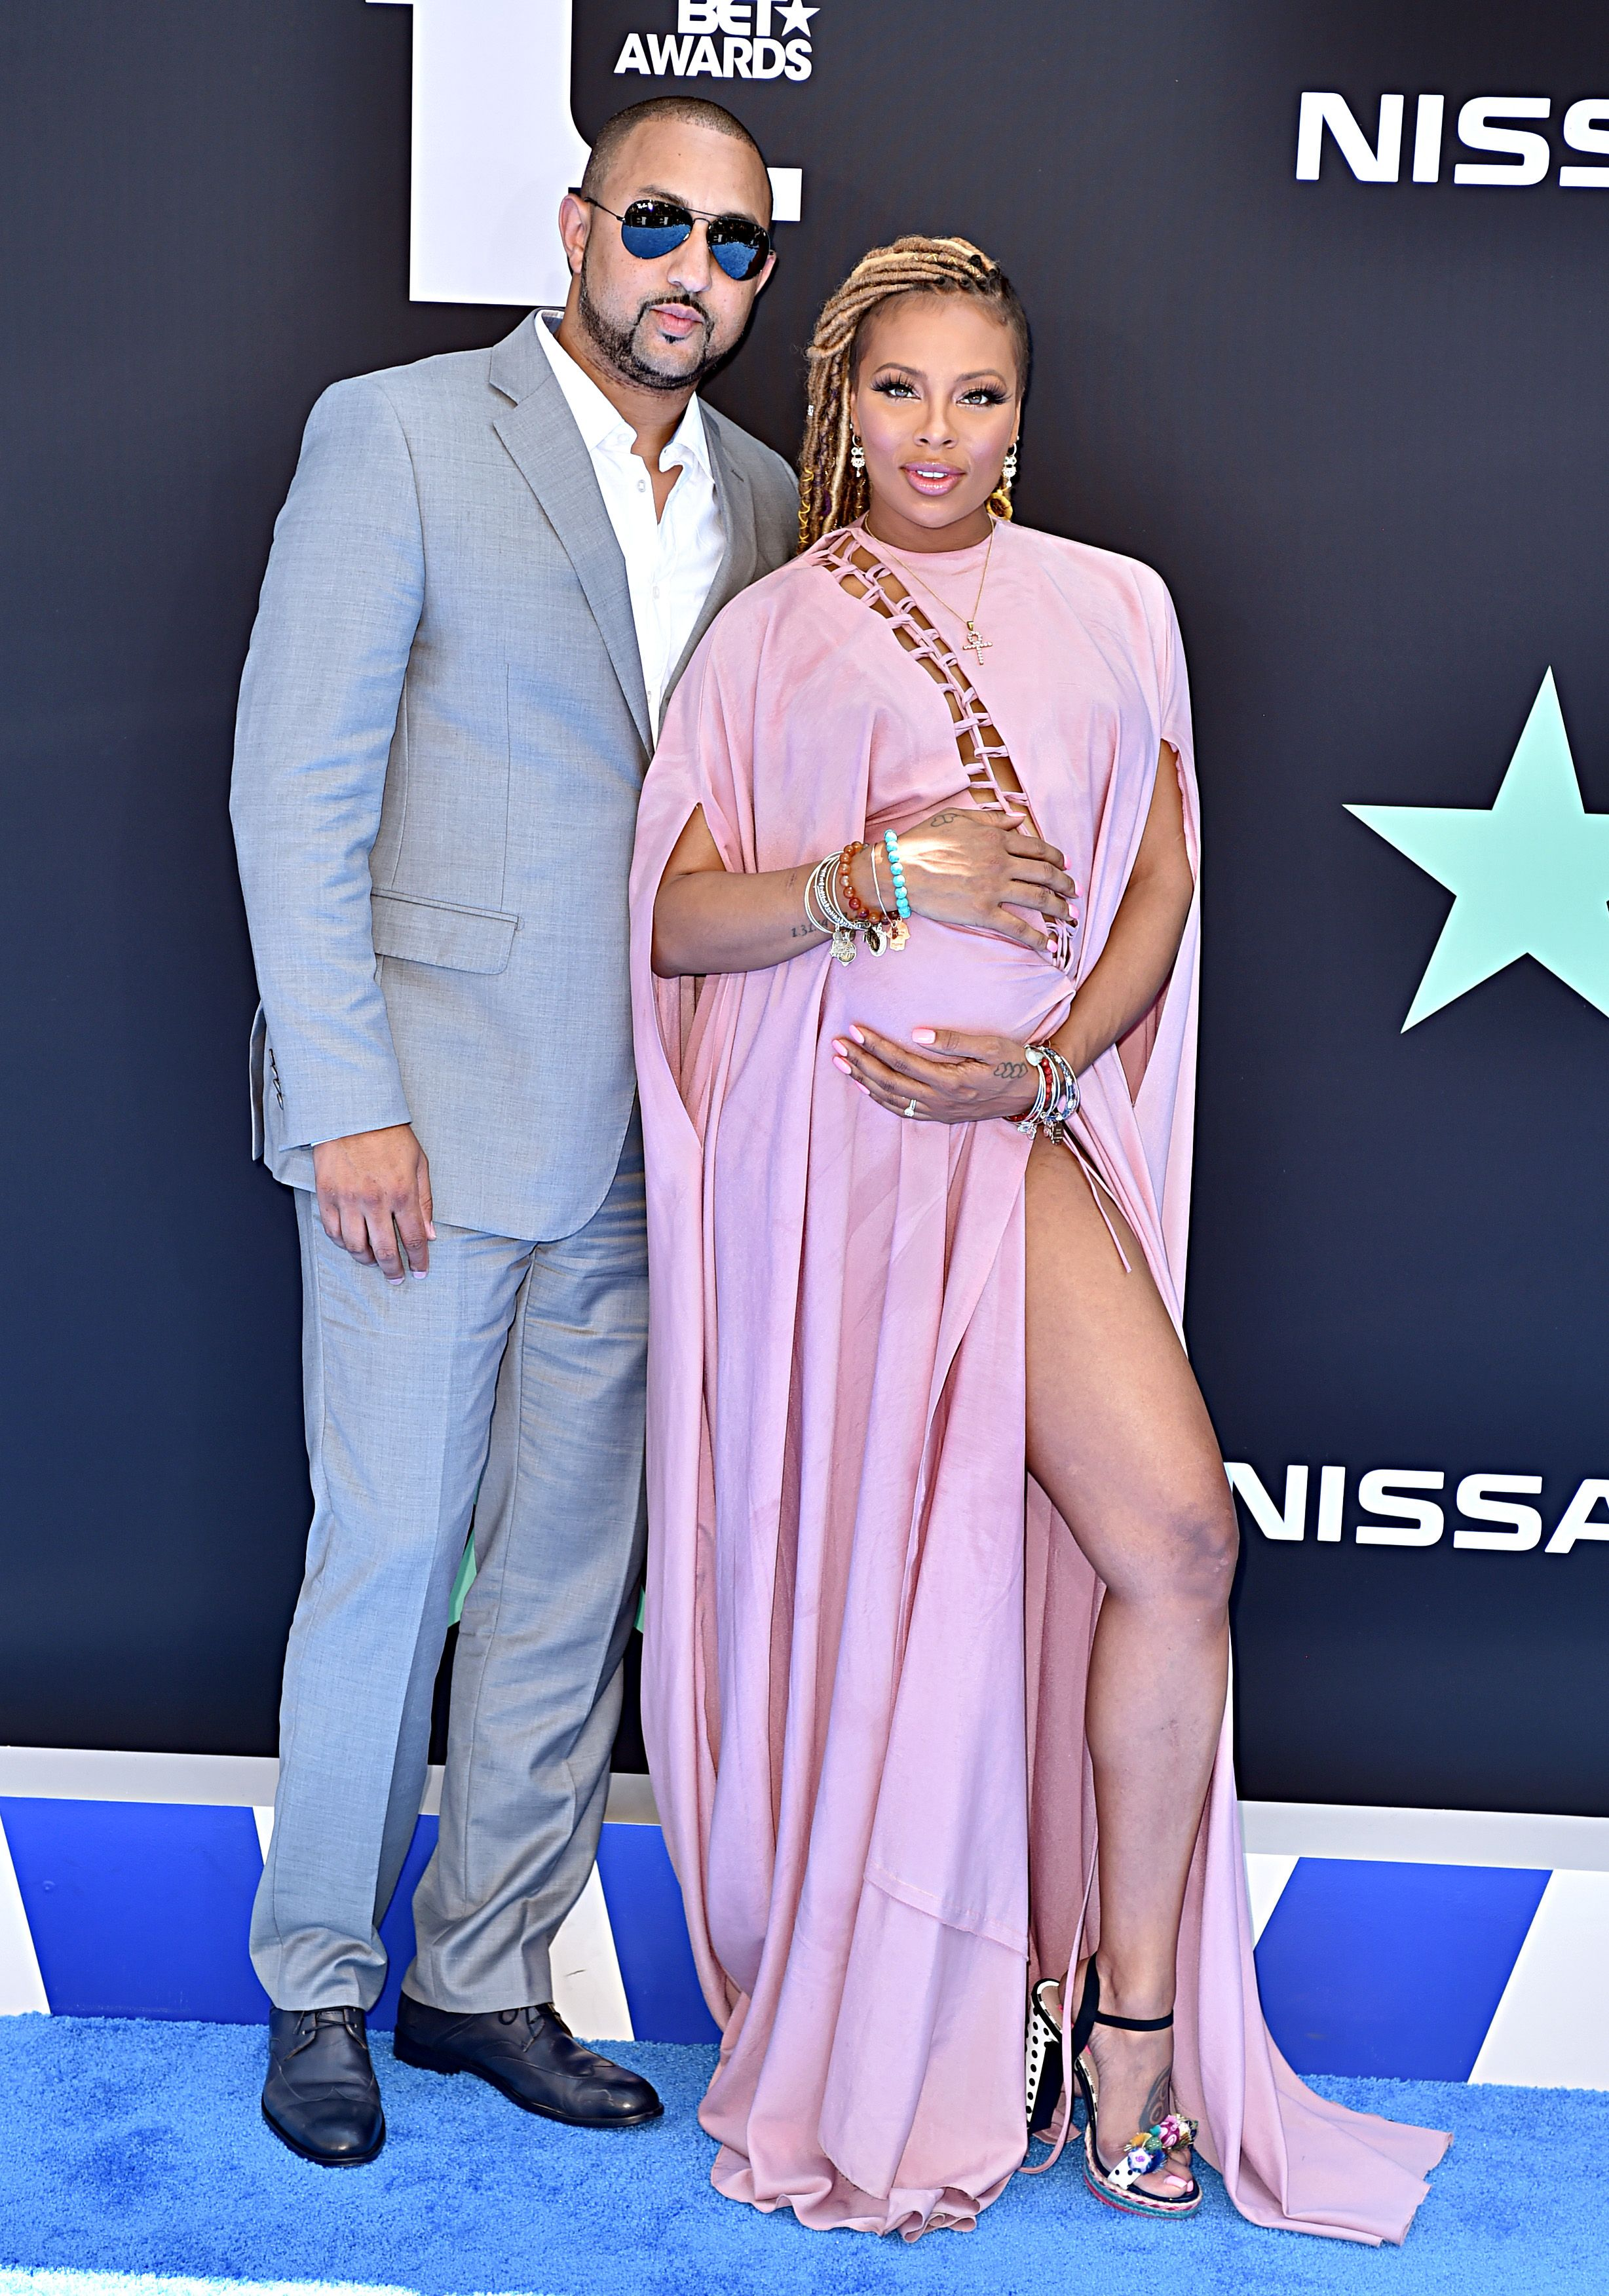 Eva Marcille and Michael Sterling arrive at the red carpet of the 2019 BET Awards on June 23, 2019 in Los Angeles, California | Source: Getty Images